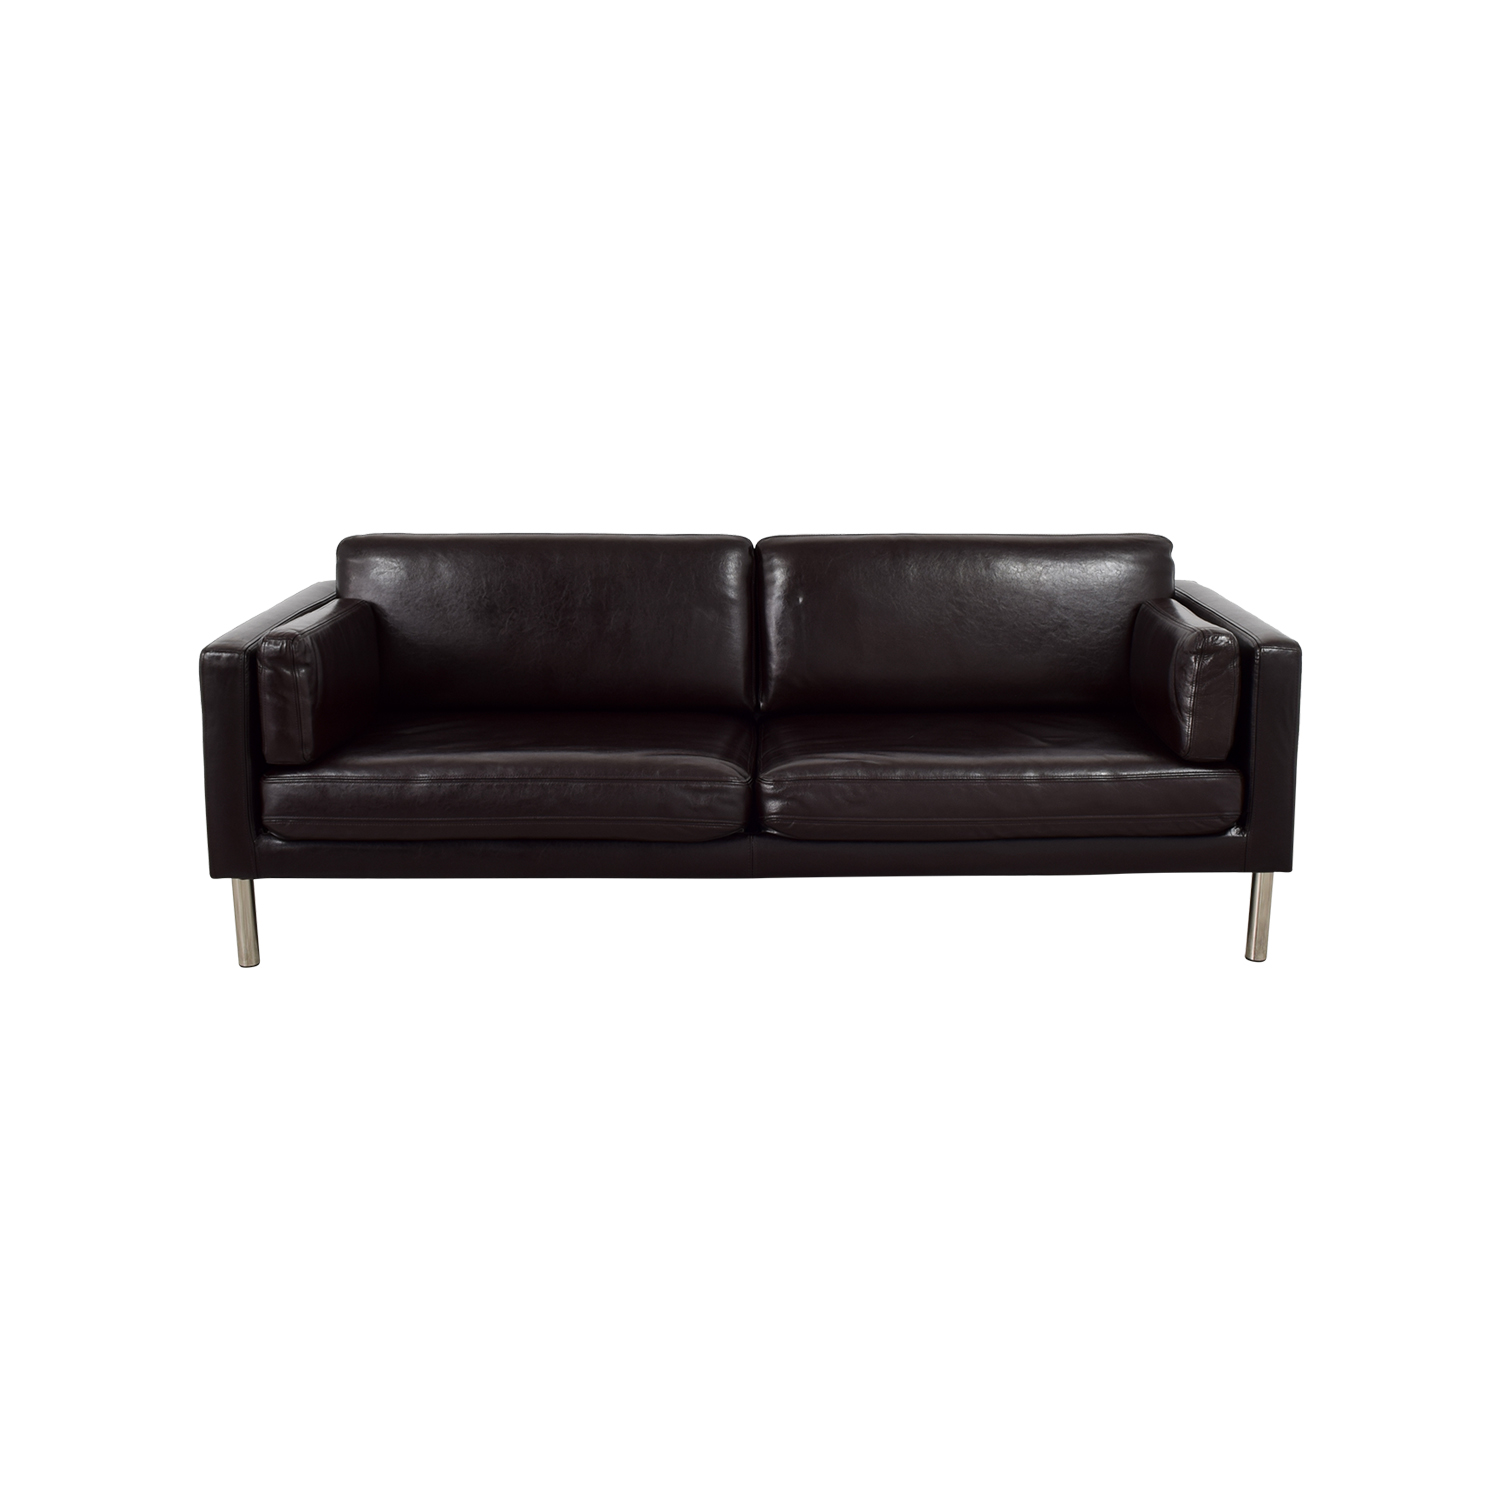 41 off ikea ieka sater brown leather couch sofas rh kaiyo com leather furniture ikea leather ikea sofa bed